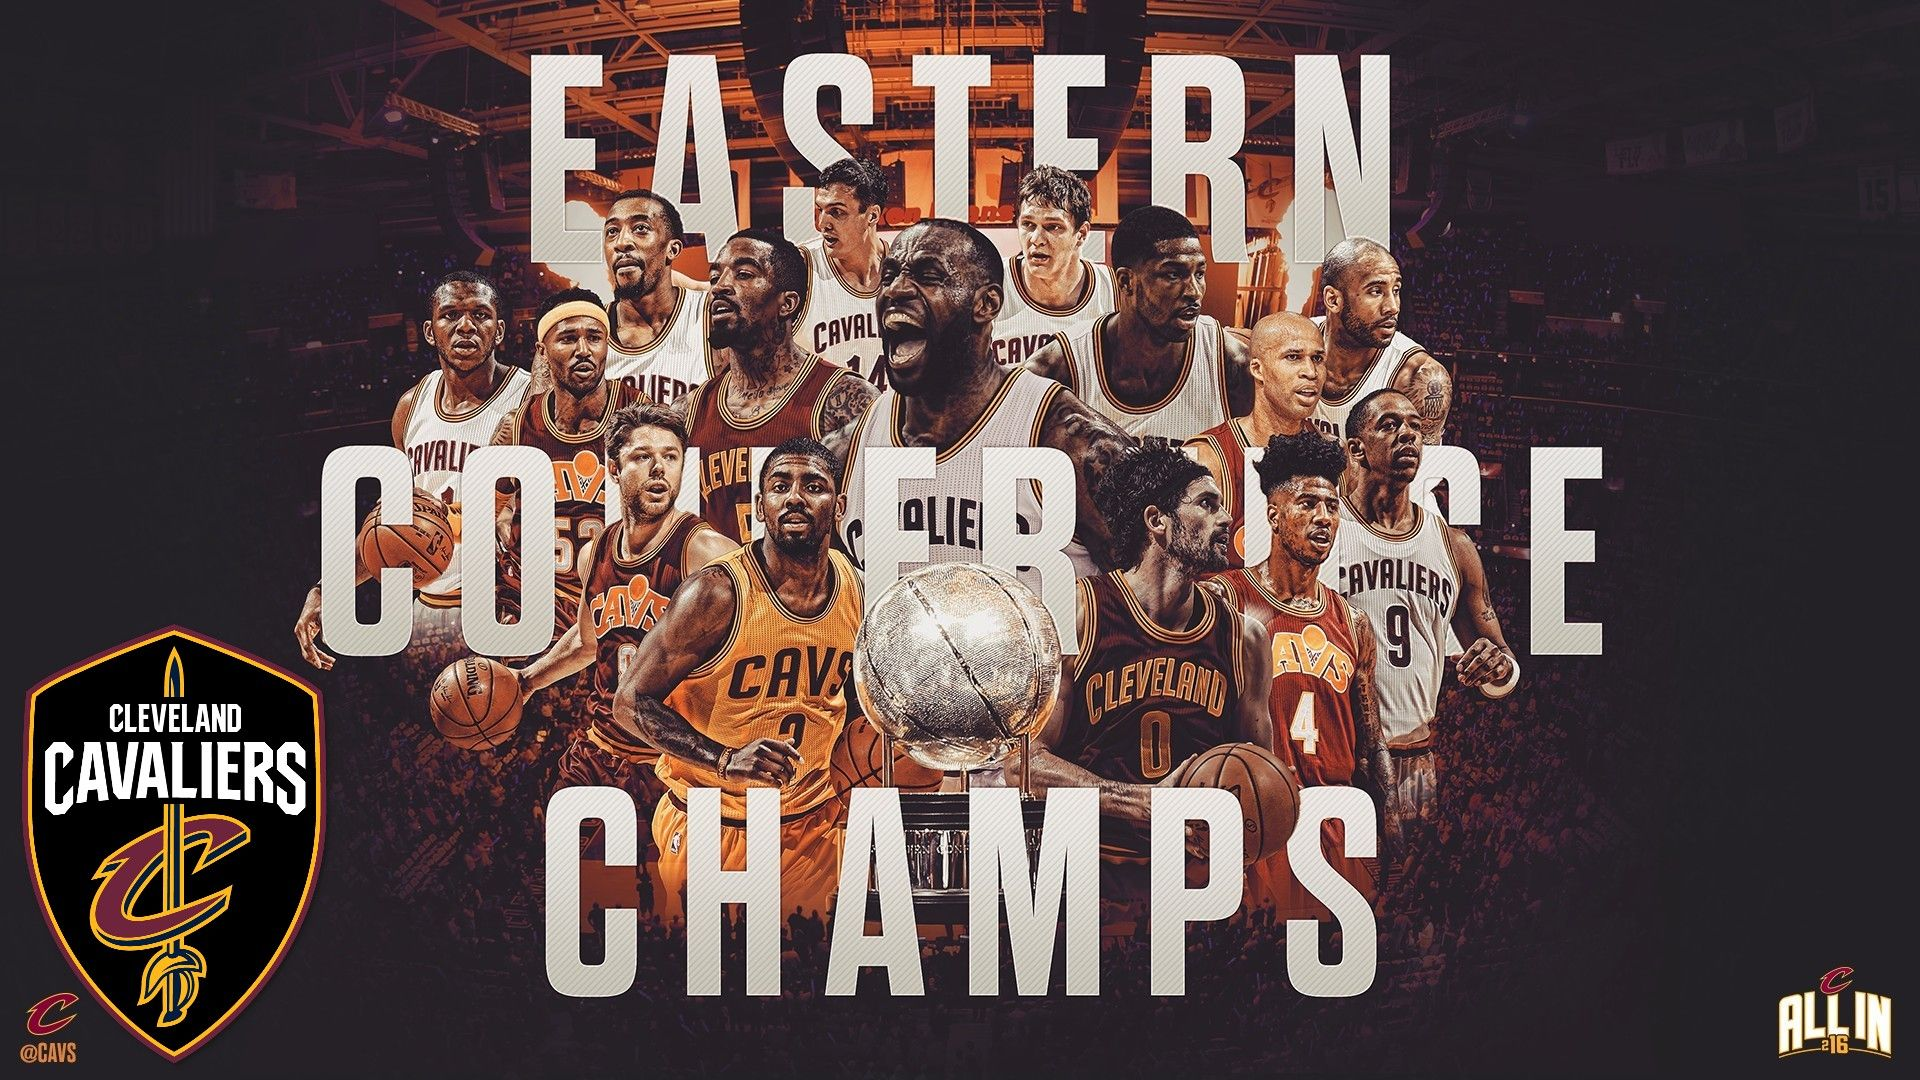 Backgrounds Cleveland Cavaliers Nba Hd 2021 Basketball Wallpaper Cavaliers Nba Cleveland Cavaliers Cleveland